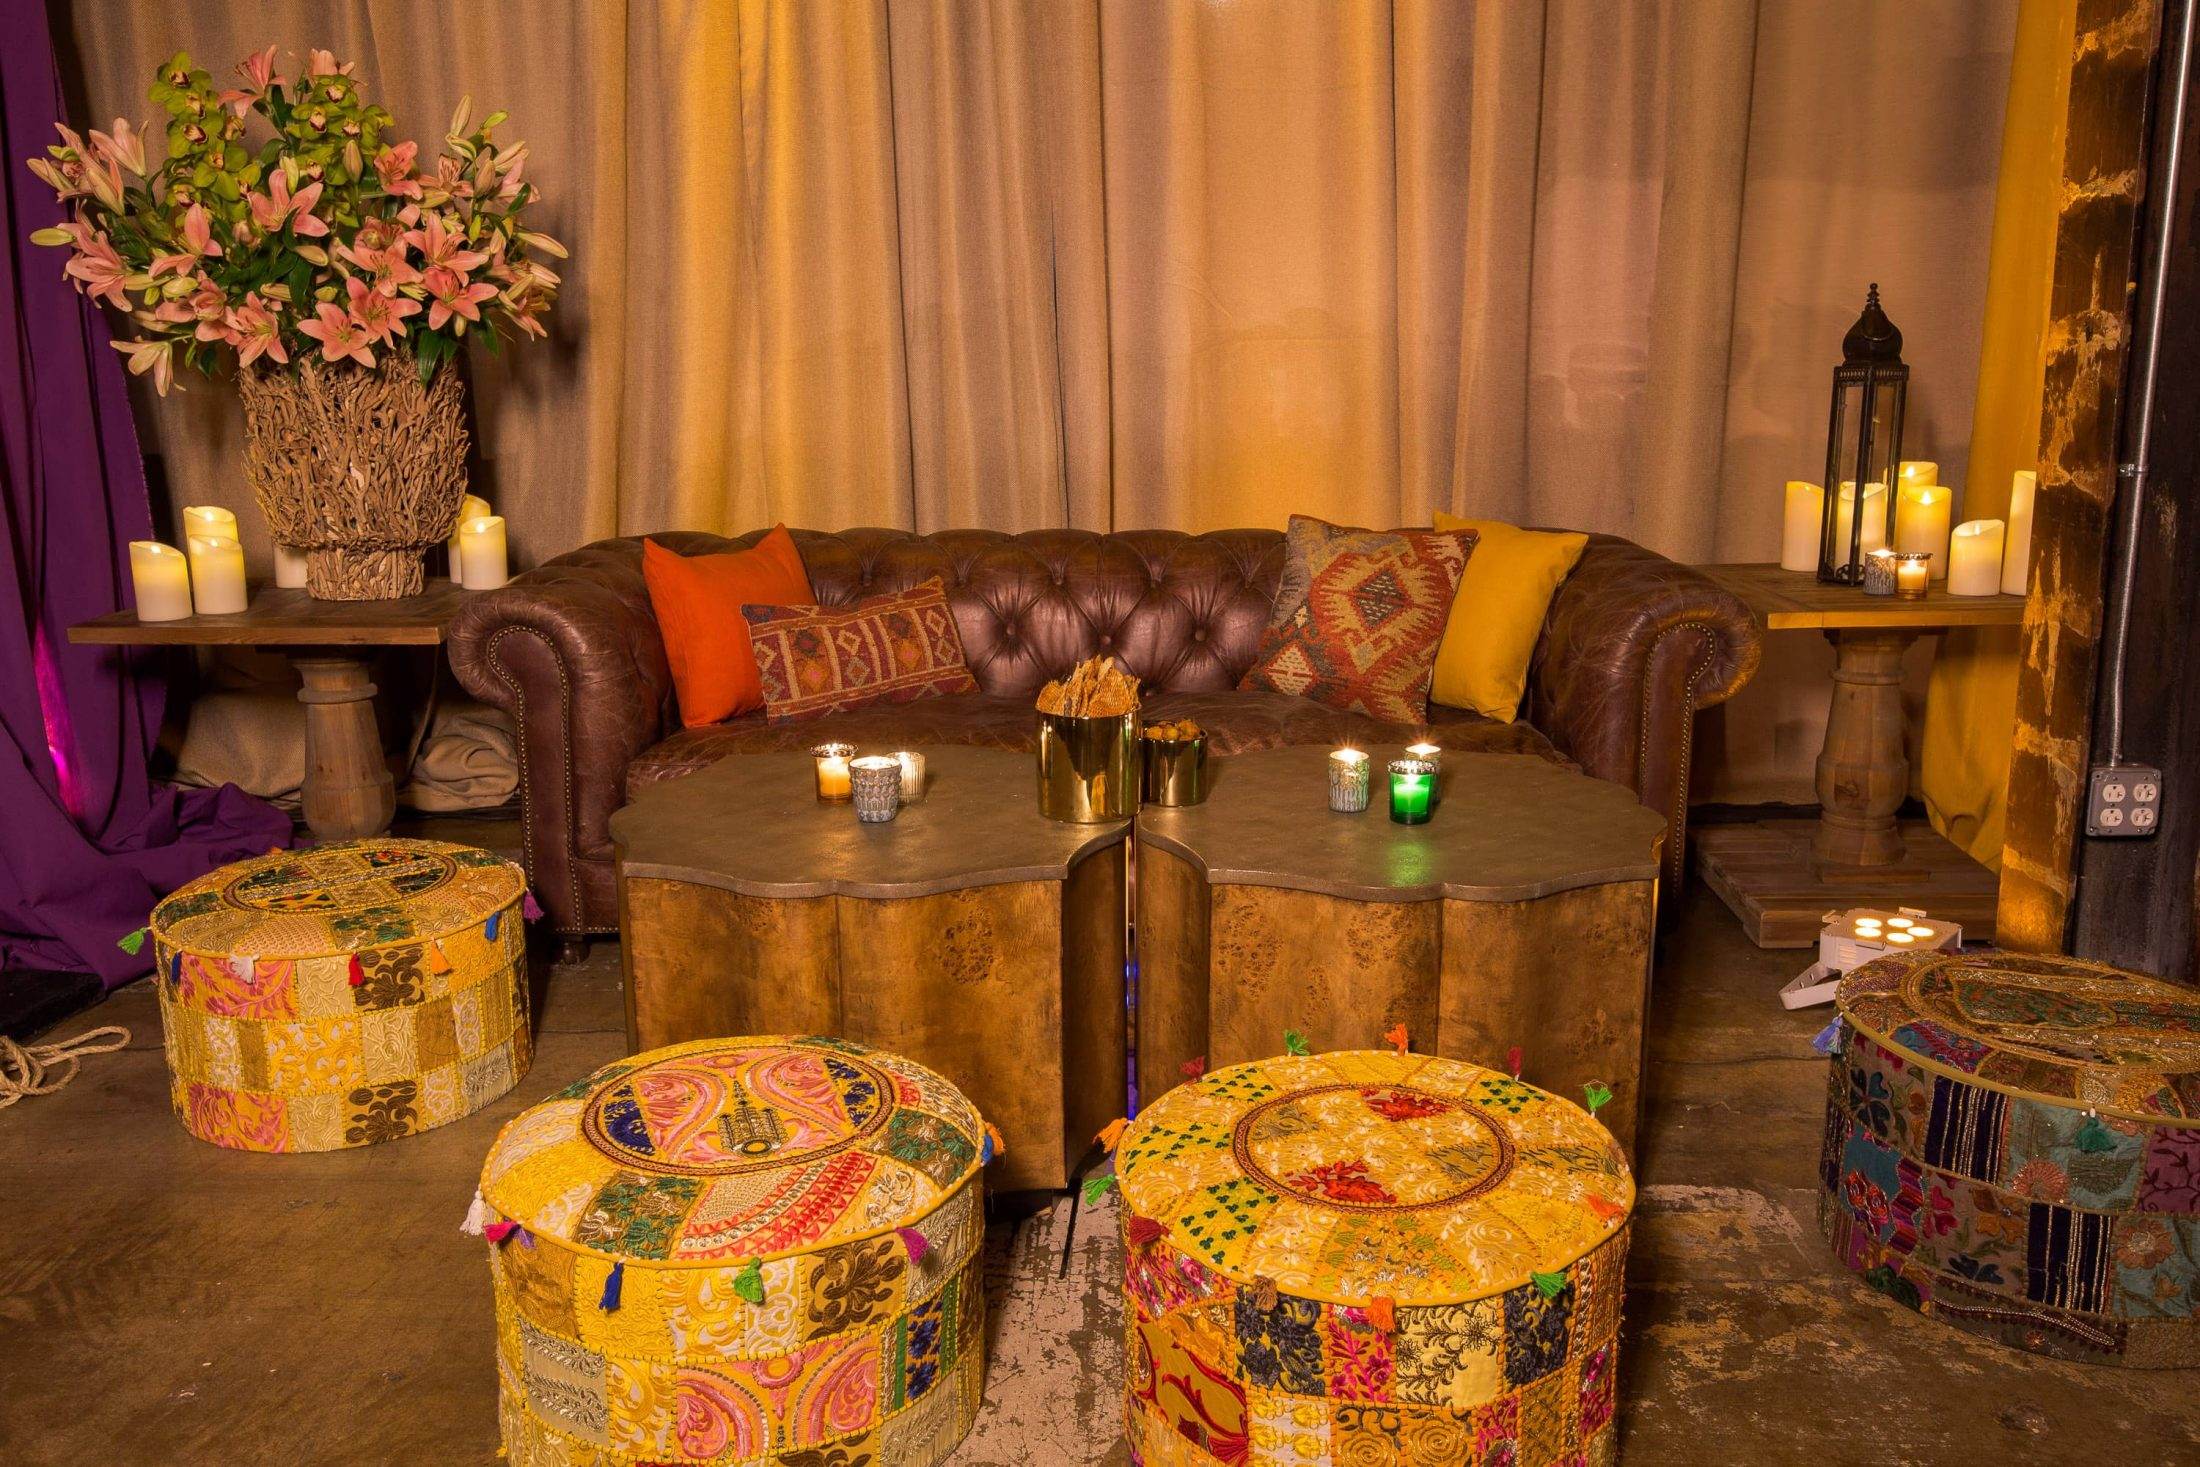 Middle Eastern inspired hangout area at this food festival and souk-inspired bat mitzvah in DC | Photo by Luis Zepeda